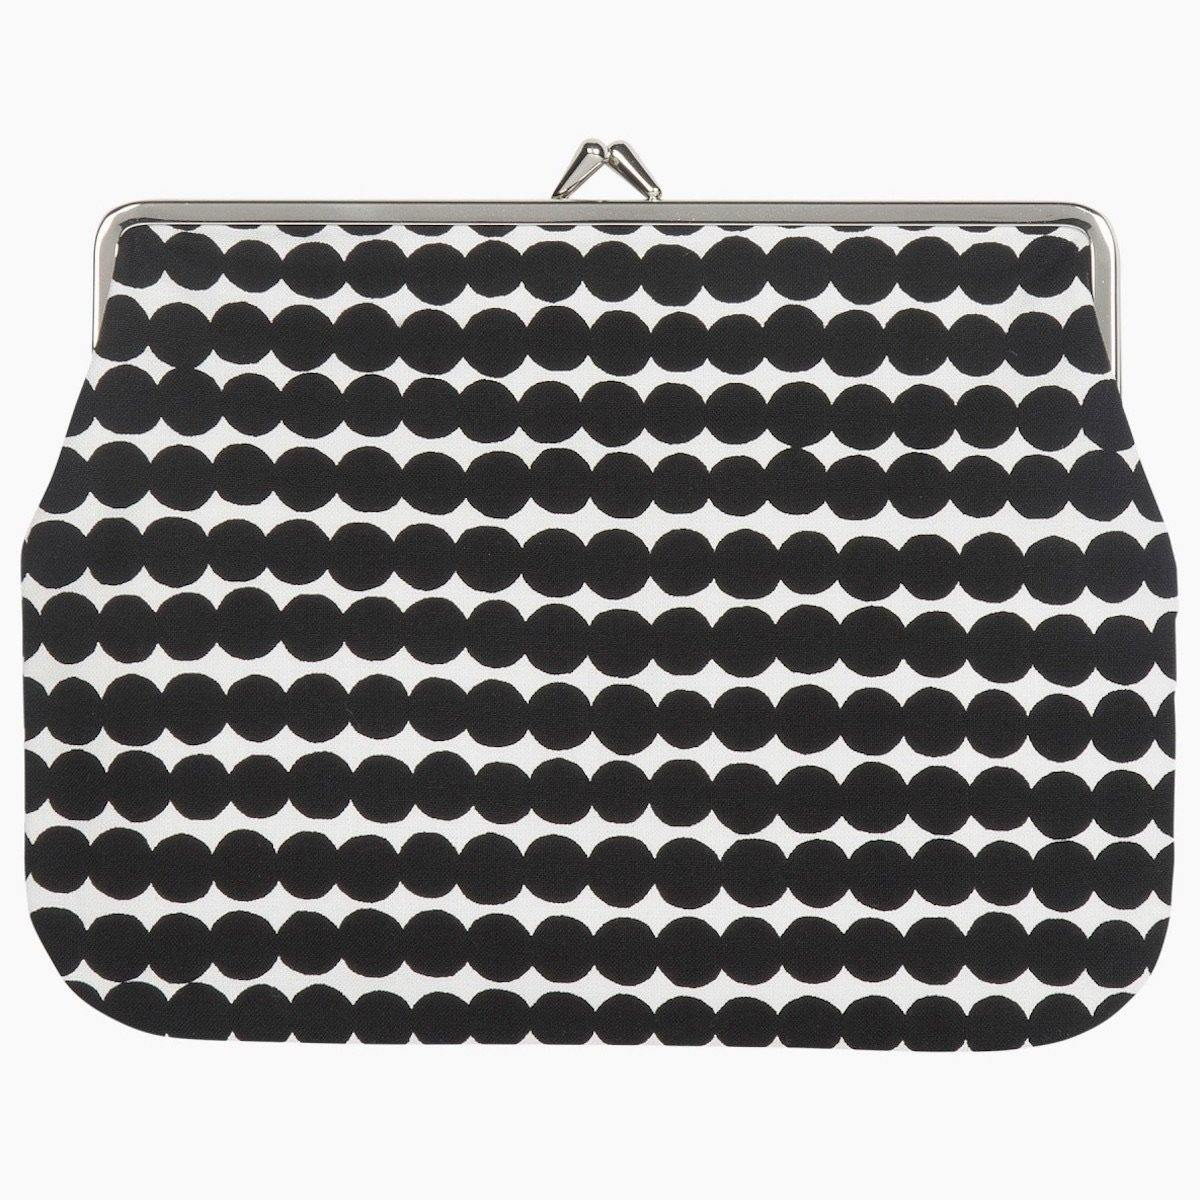 PUOLIKAS KUKKARO purse – 5 colours